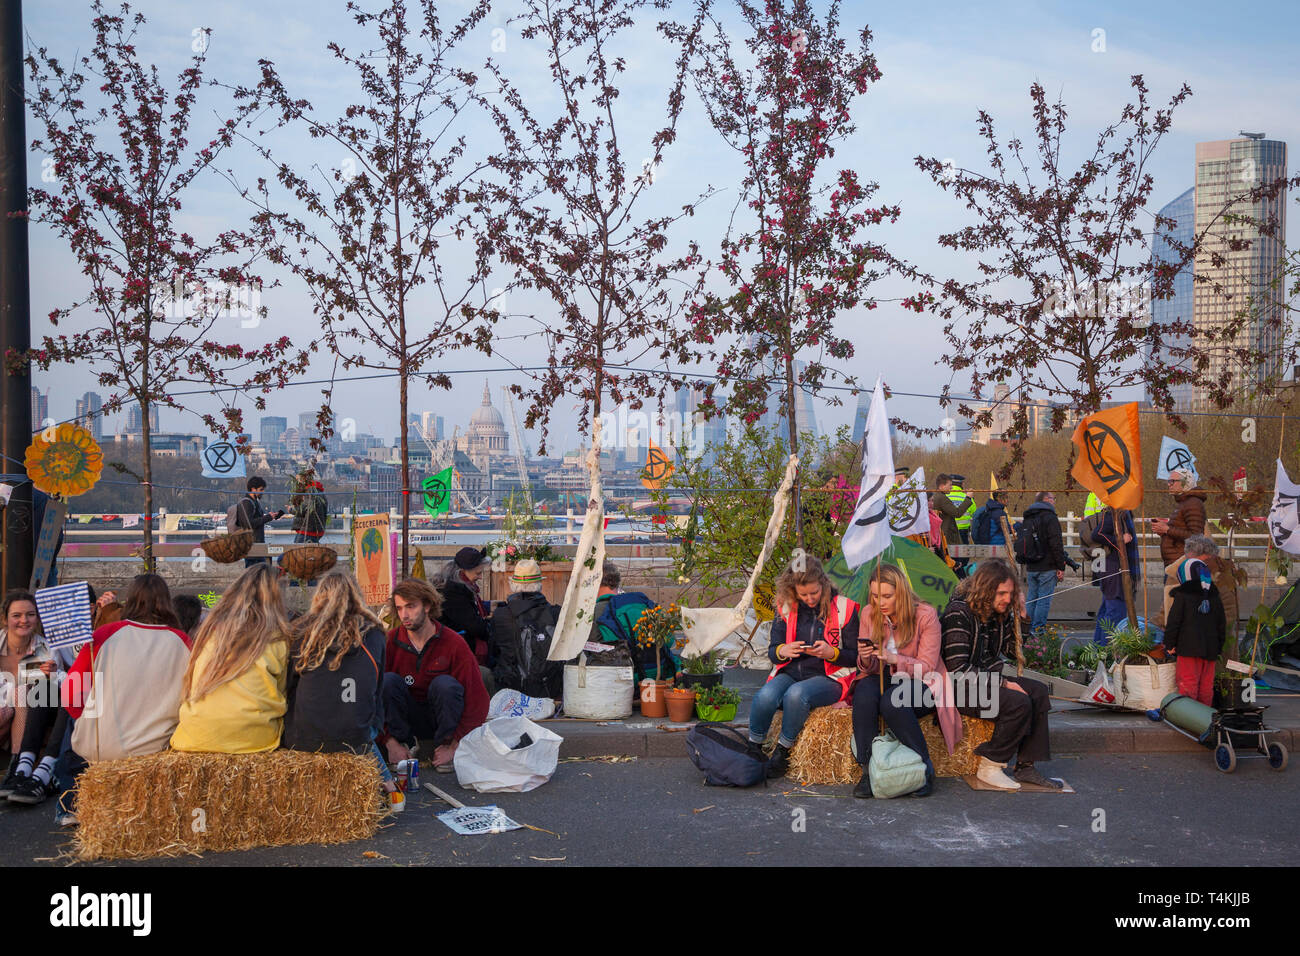 Protestors rest on Waterloo Bridge for the Extinction Rebellion demonstration with trees behind Stock Photo